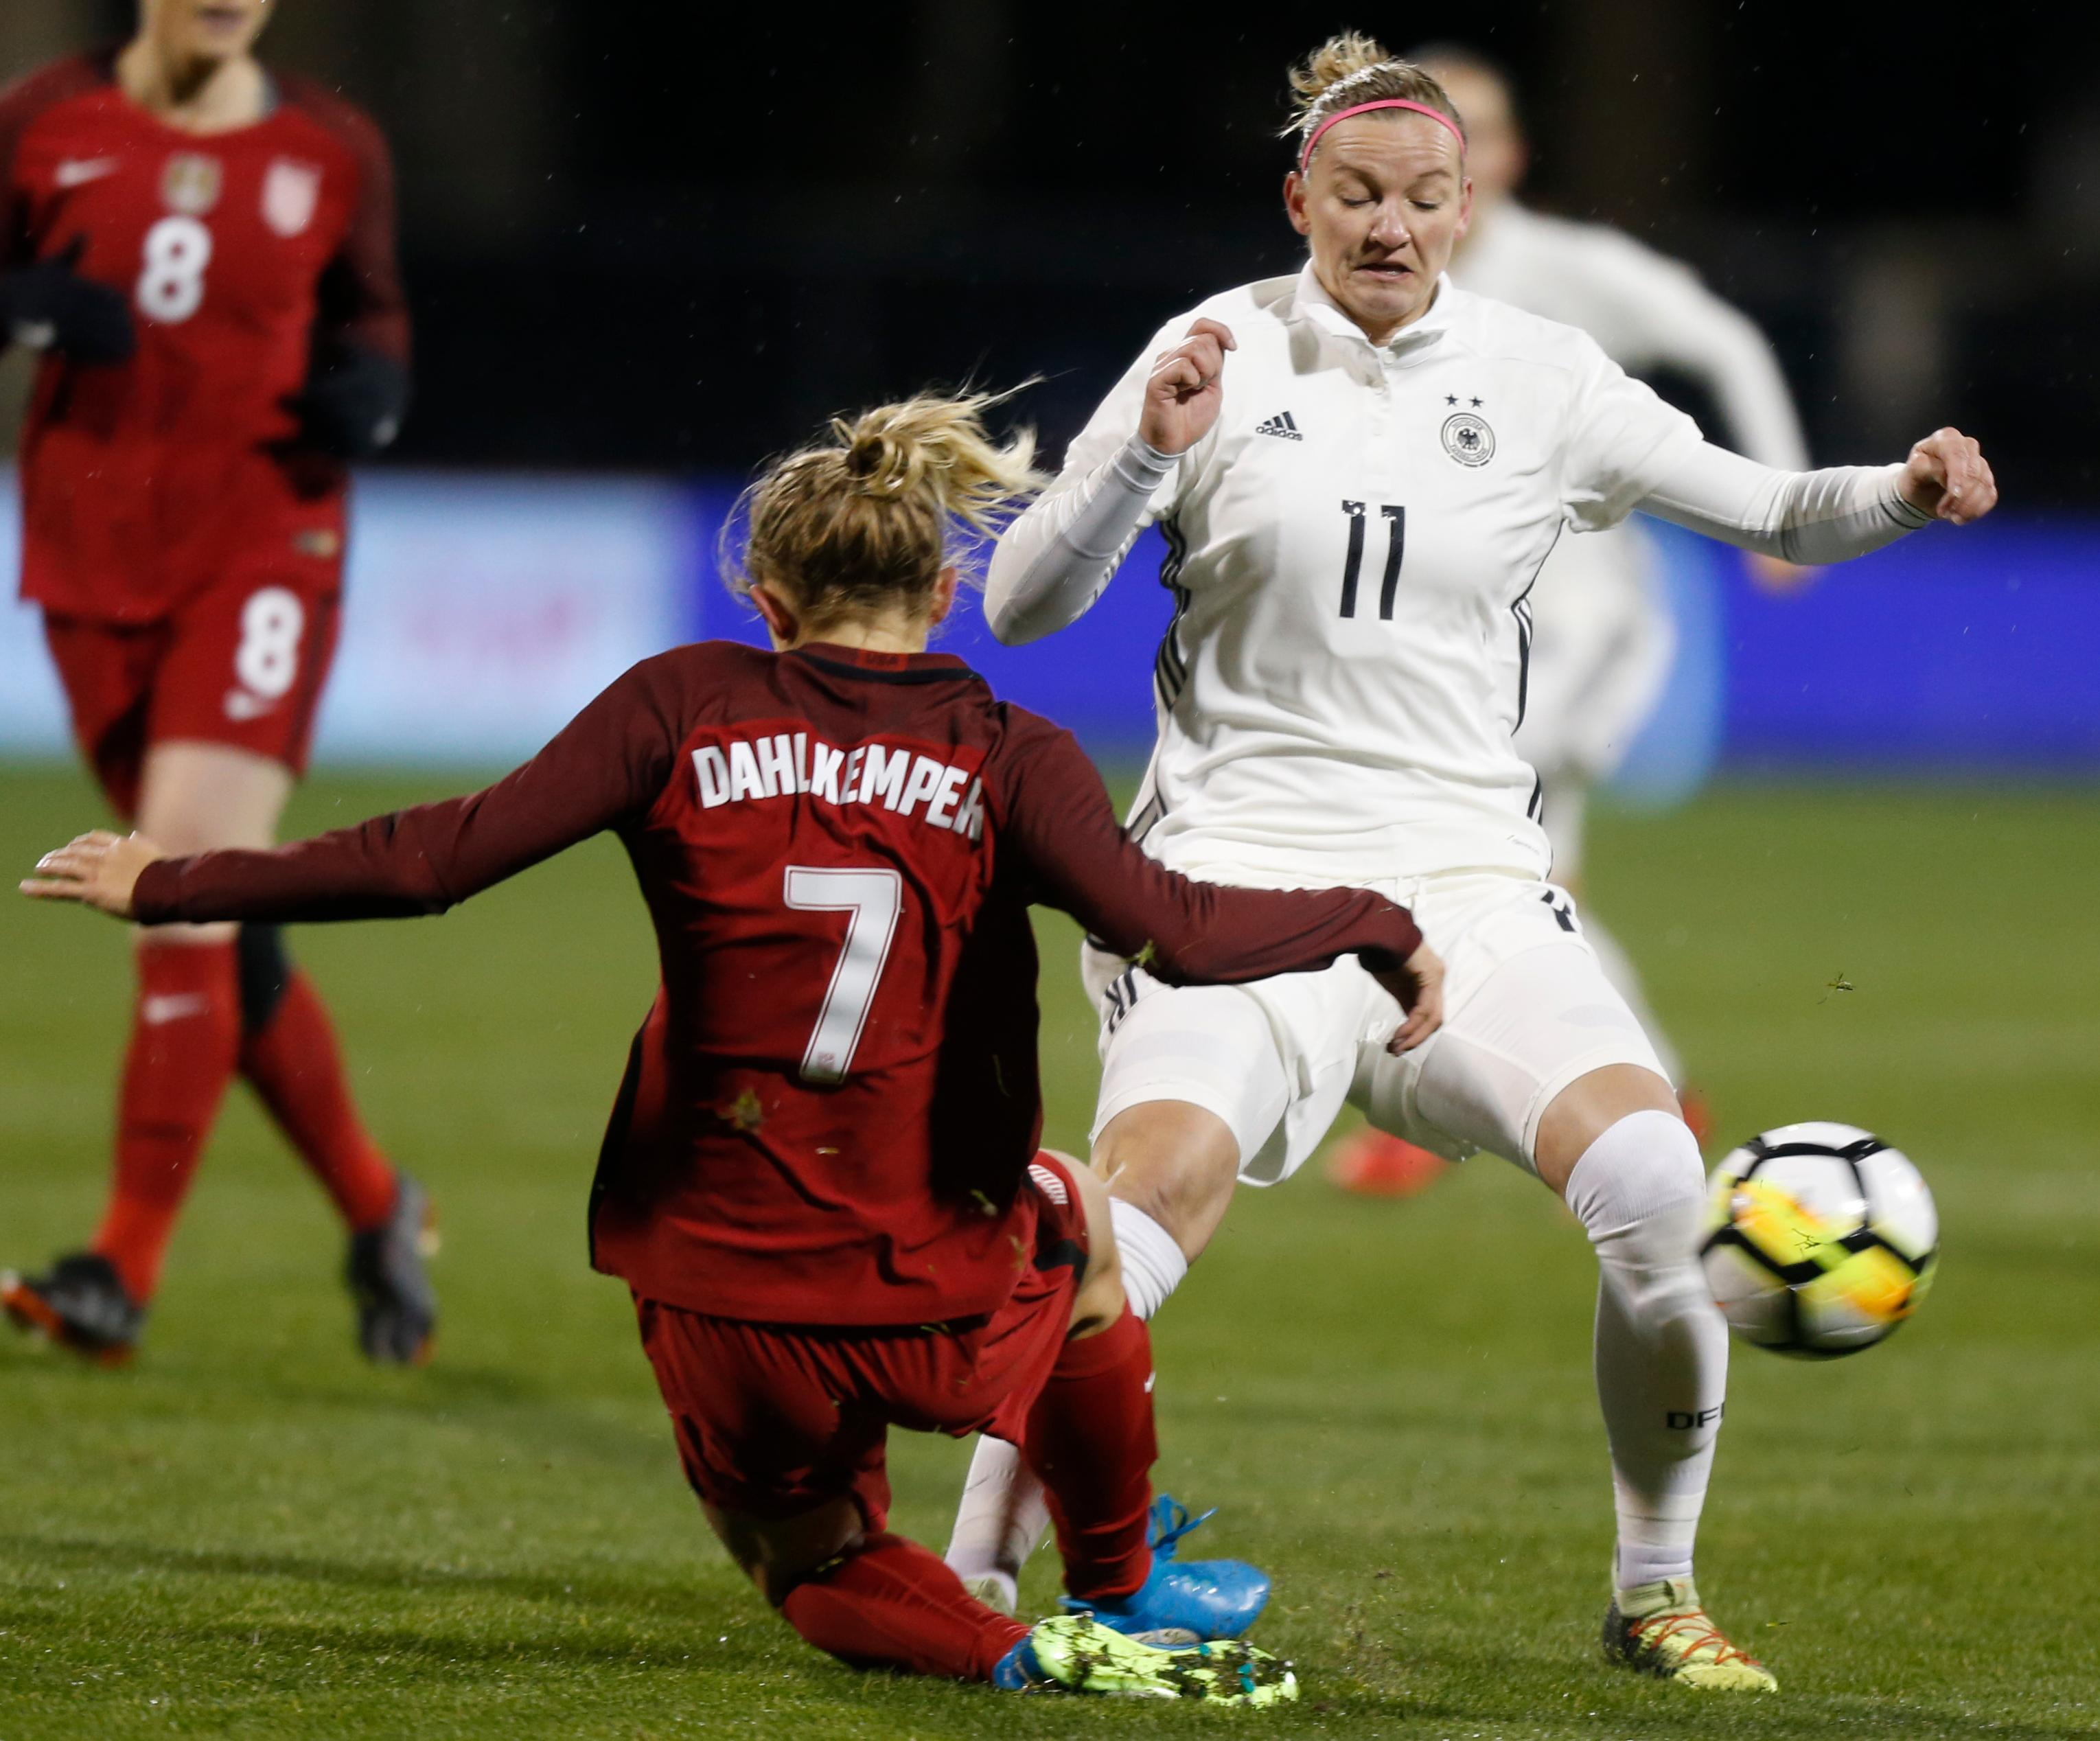 Germany's Alexandra Popp, right, kicks the ball away from United States' Abby Dahlkemper during the first half of a SheBelieves Cup women's soccer match Thursday, March 1, 2018, in Columbus, Ohio. (AP Photo/Jay LaPrete)